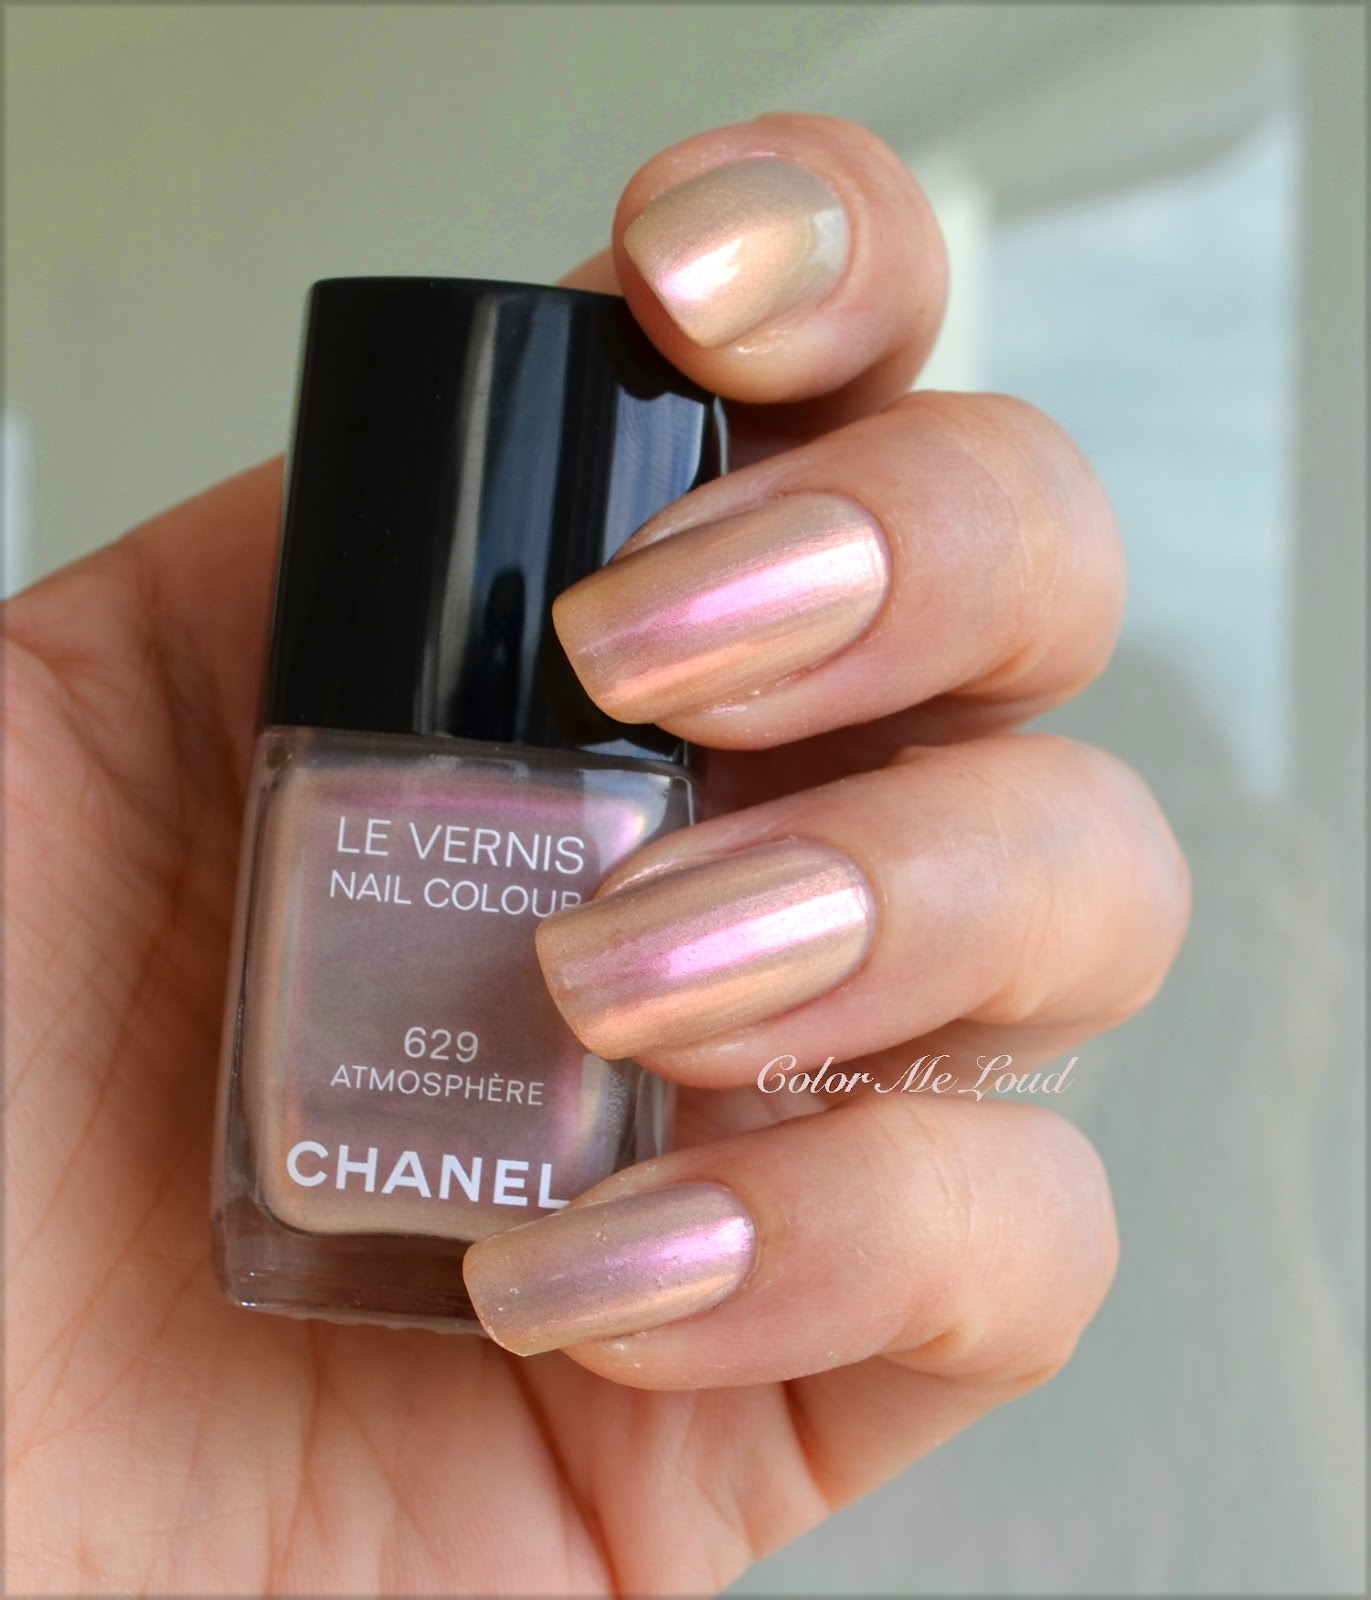 Exceptionnel Chanel Le Vernis #625 Secret, #629 Atmosphere and #631 Orage from  TI21